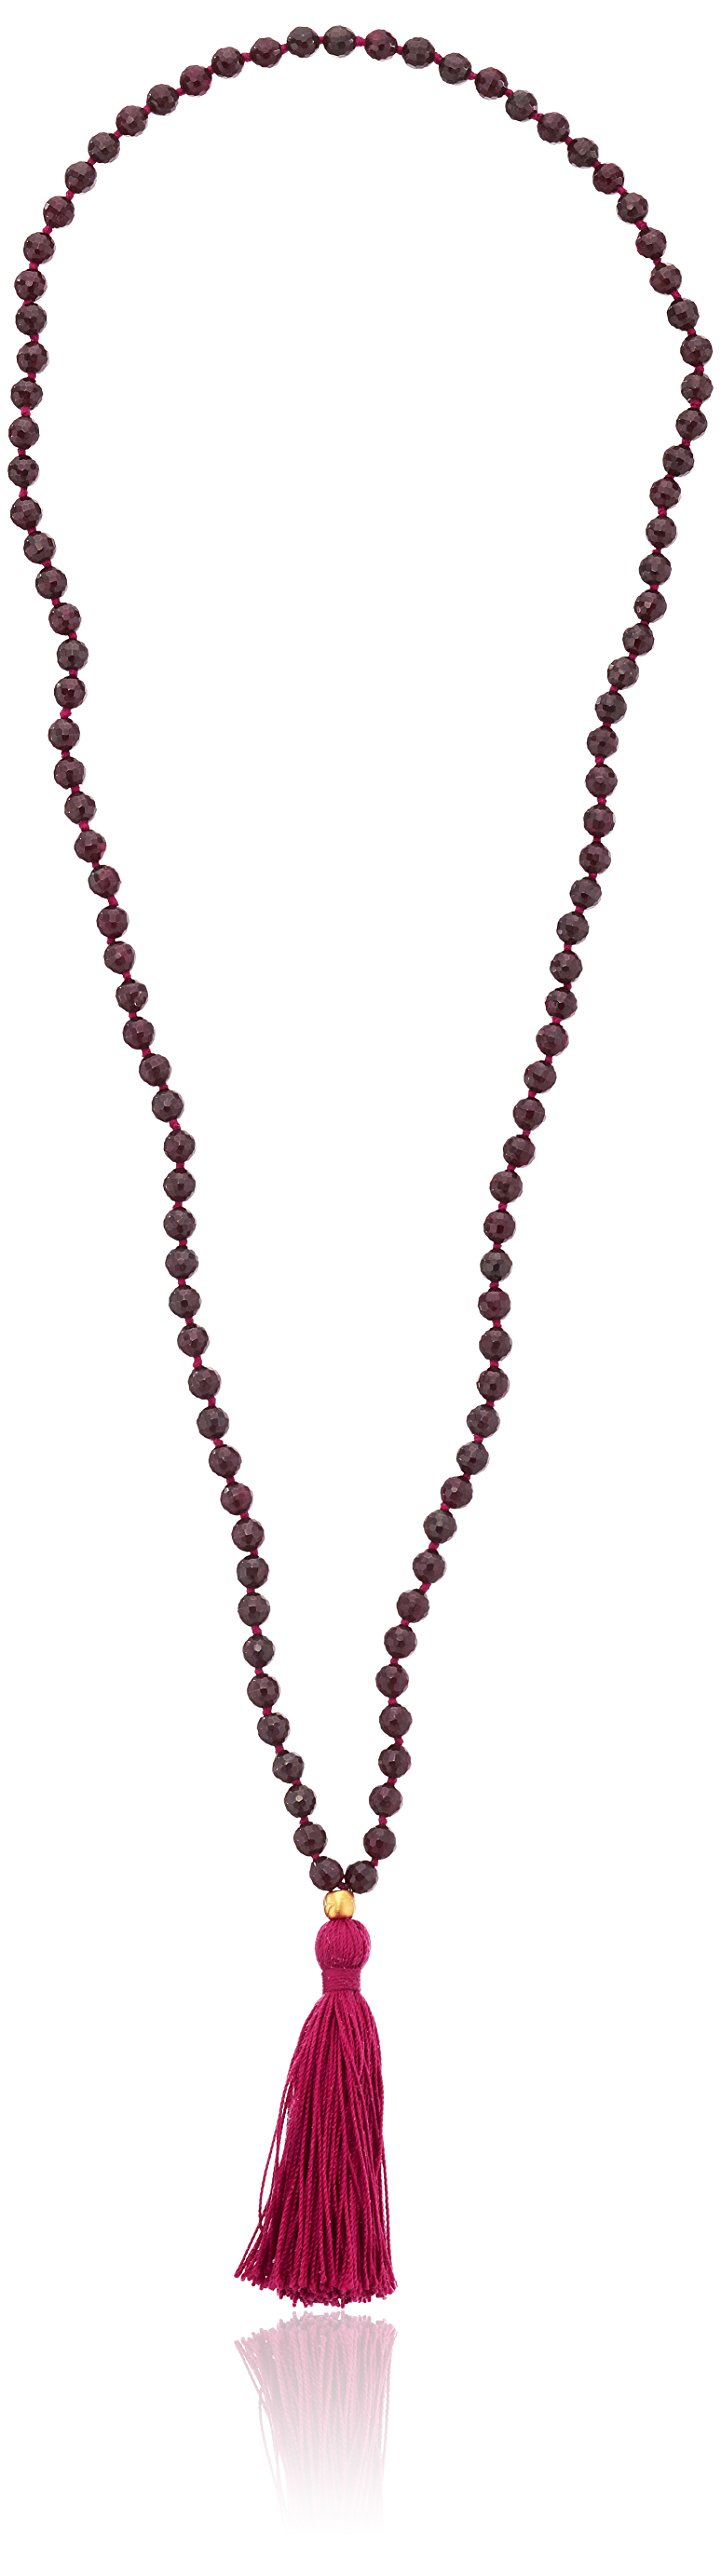 Satya Jewelry Gold Garnet Mala Strand Necklace (30-Inch)